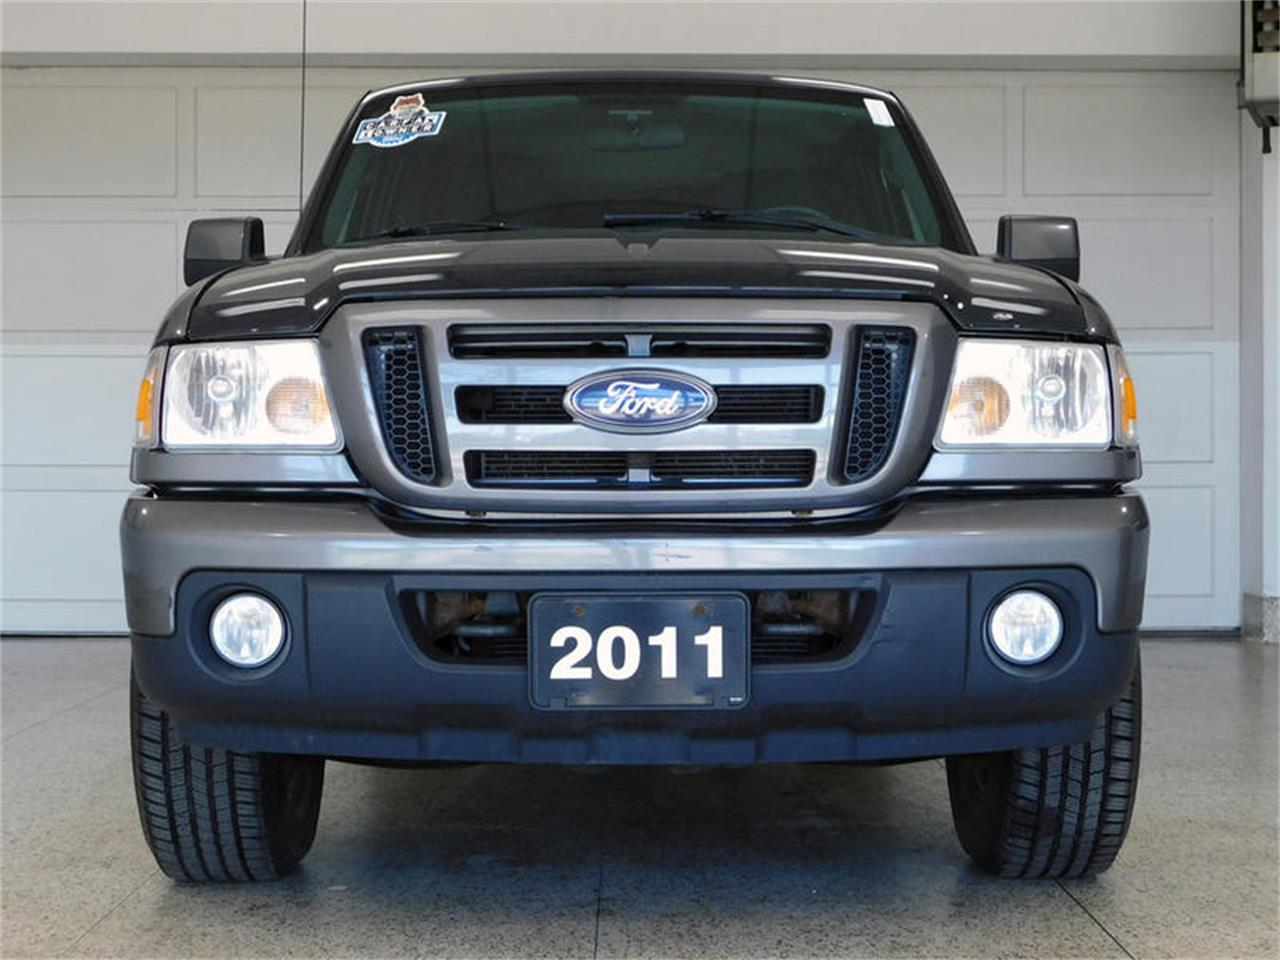 Large Picture of 2011 Ford Ranger located in Hamburg New York - Q0A9